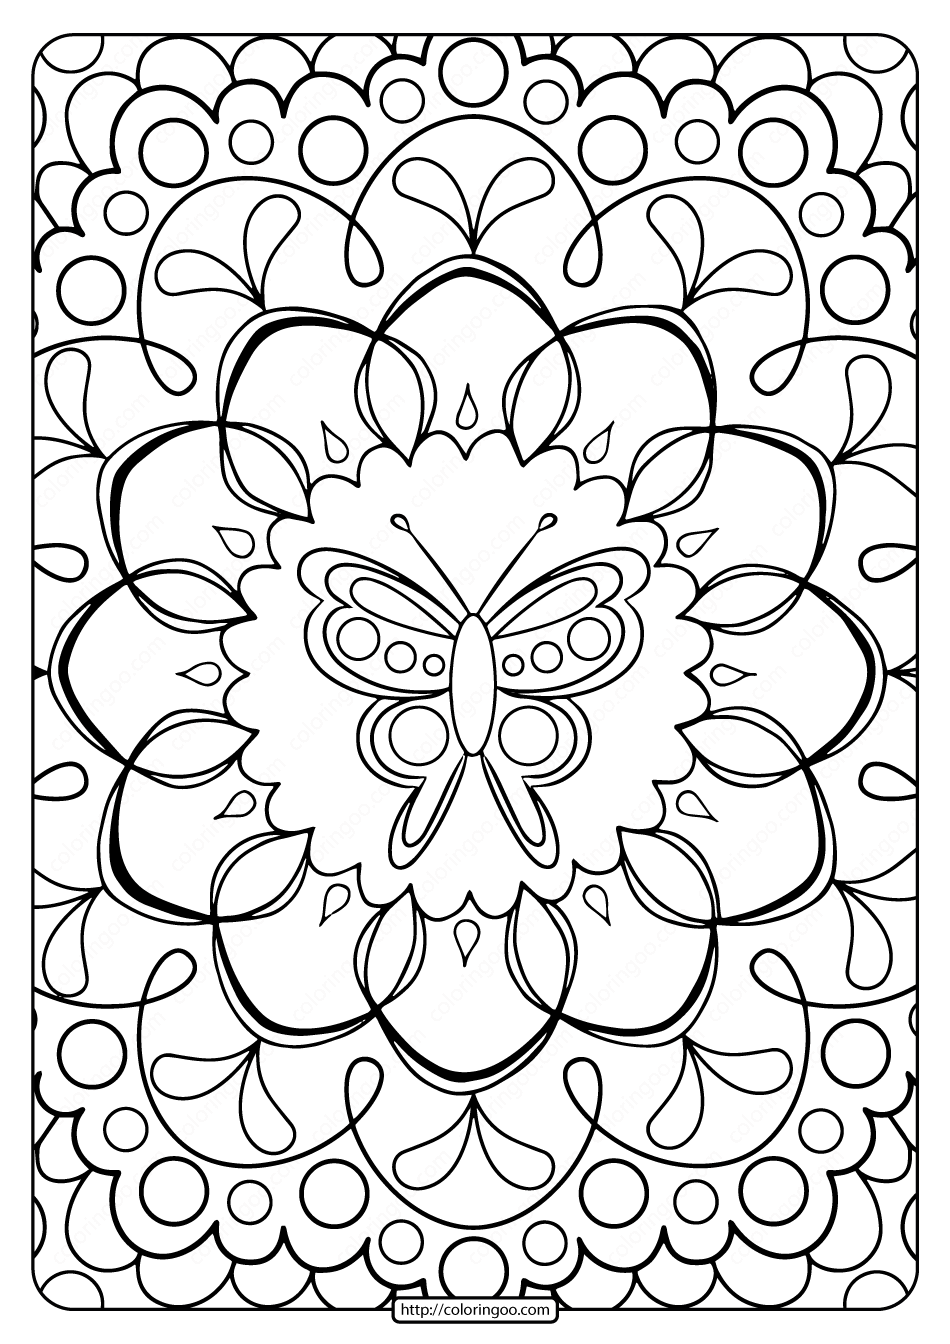 coloring pages free snail coloring pages to download and print for free pages free coloring